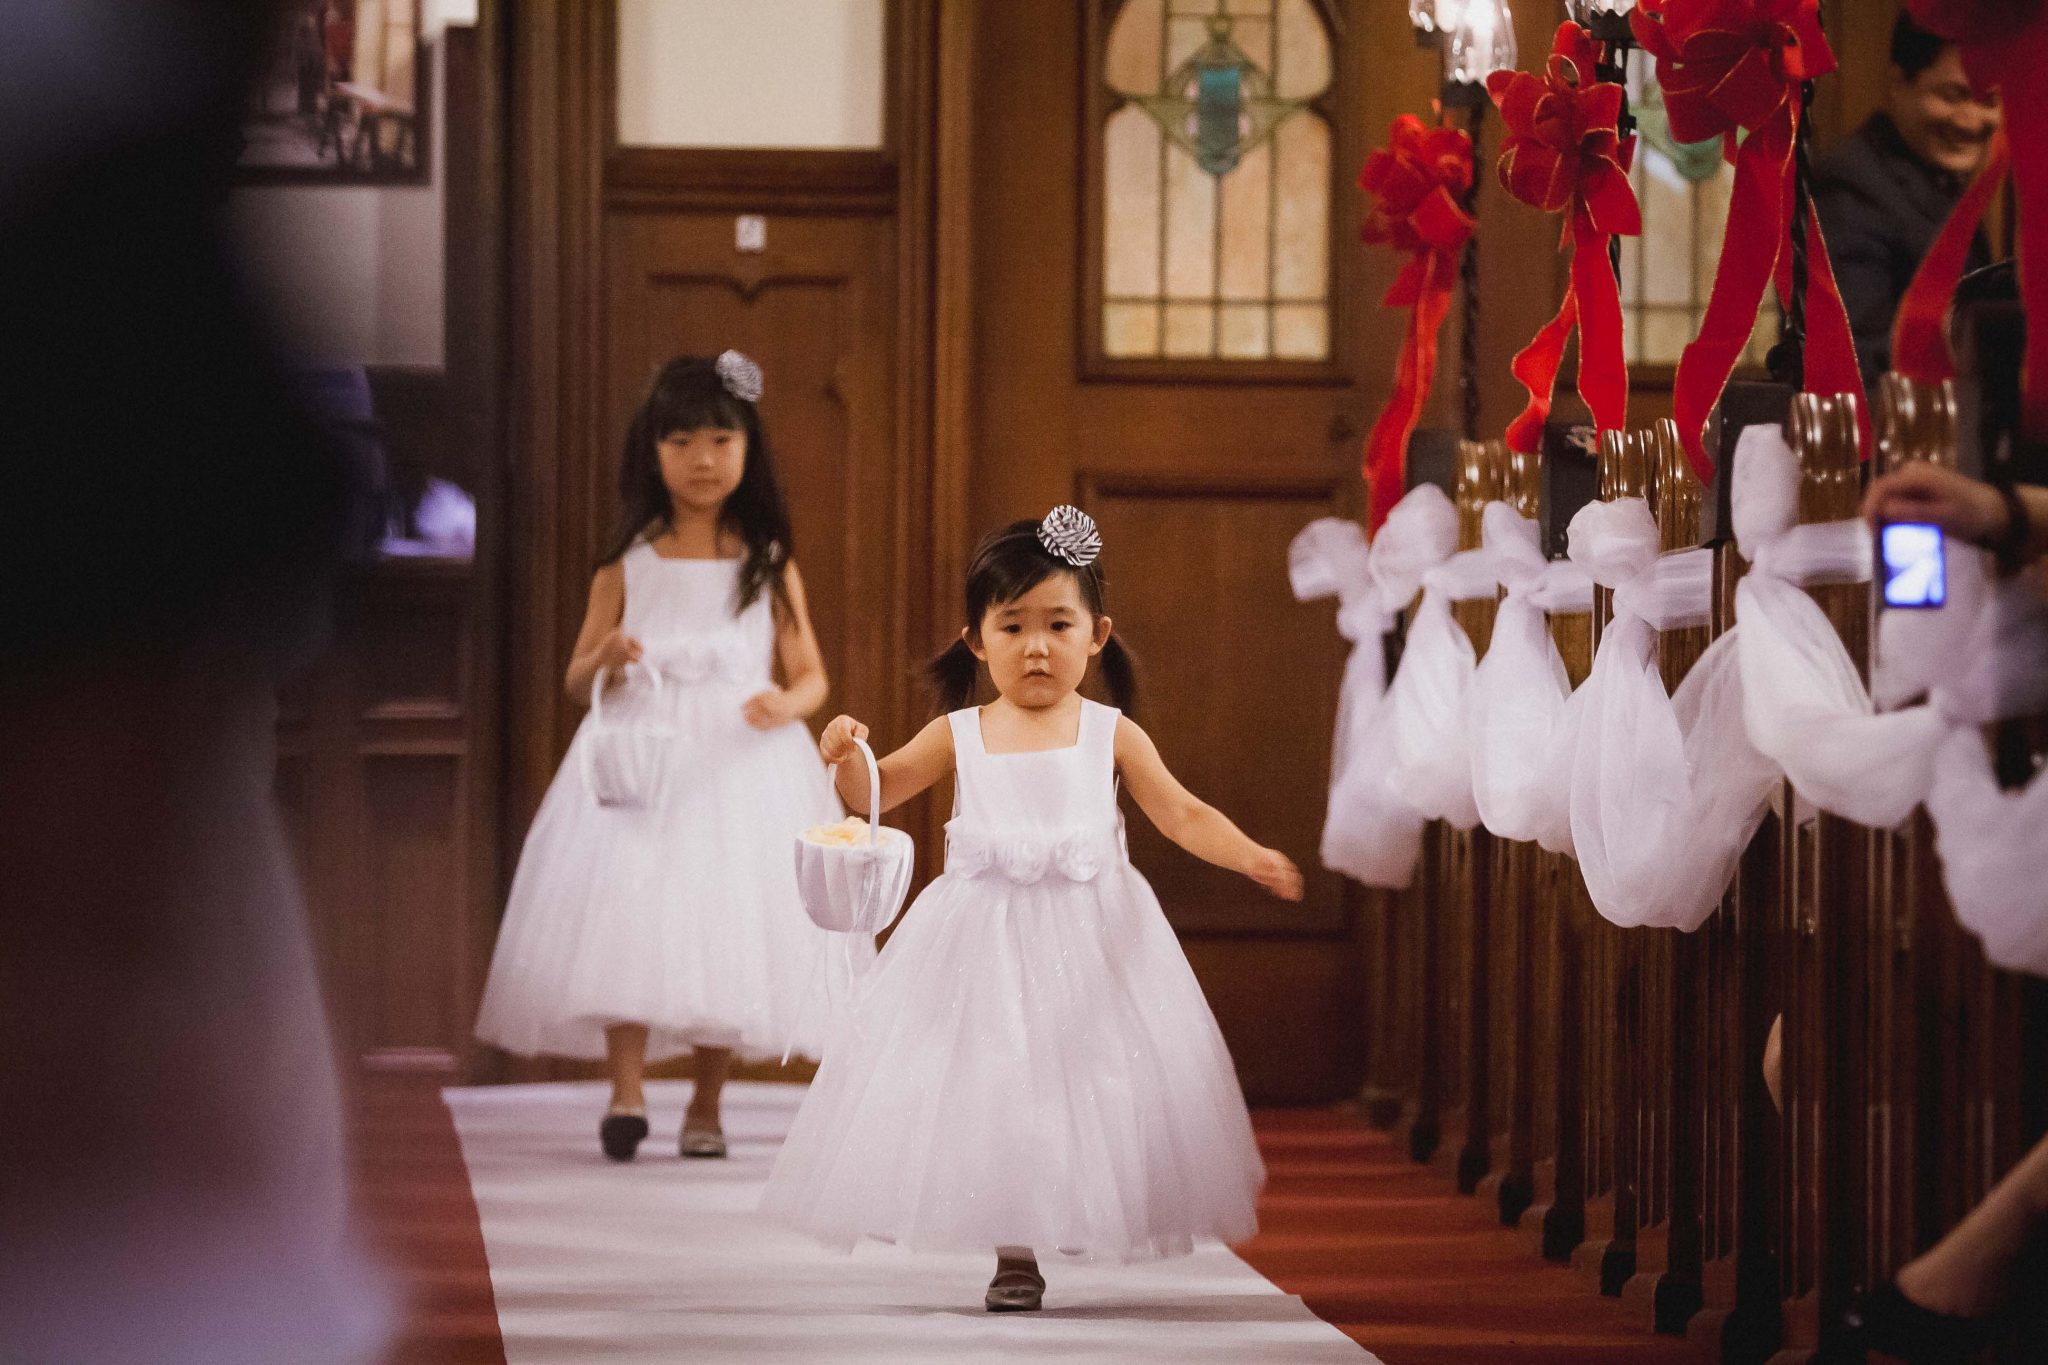 Flower girl running down the aisle during the wedding ceremony in San Diego